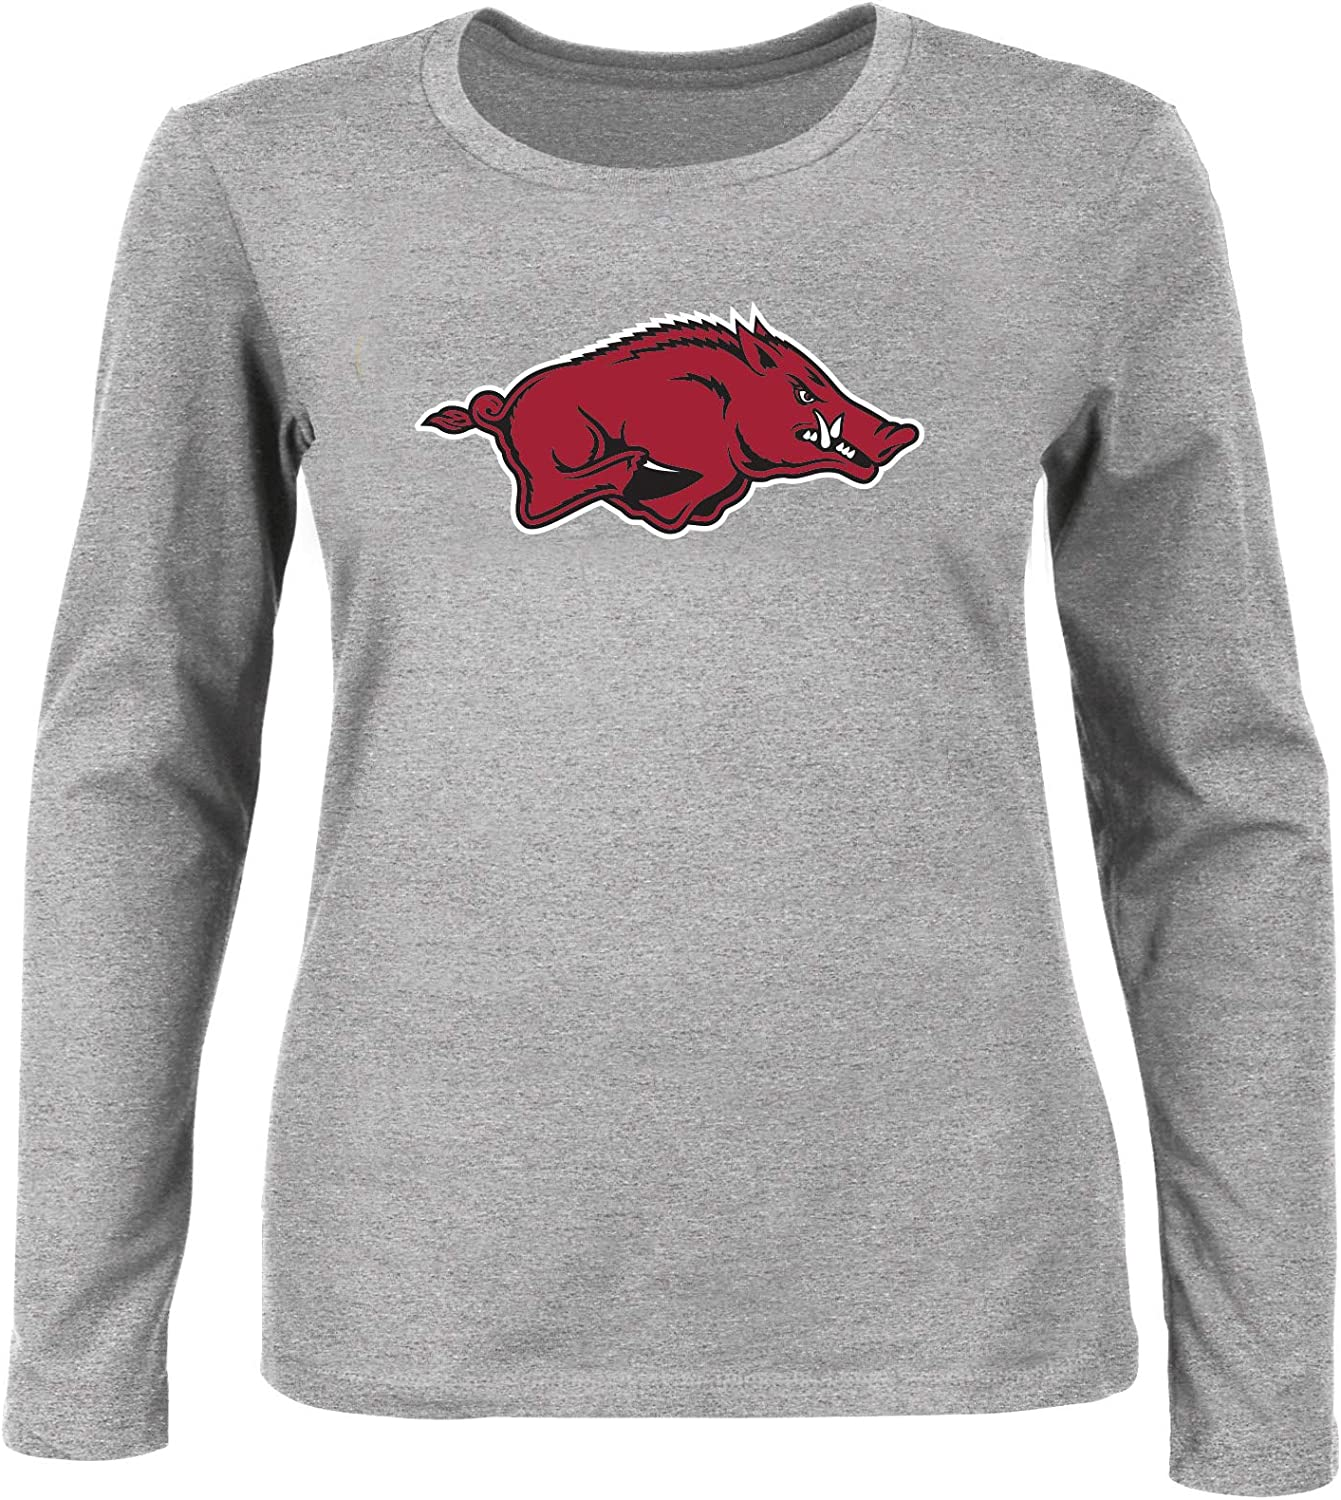 NCAA Womens Plus Size Scoop-Neck Long Sleeve Cotton Tee Shirt